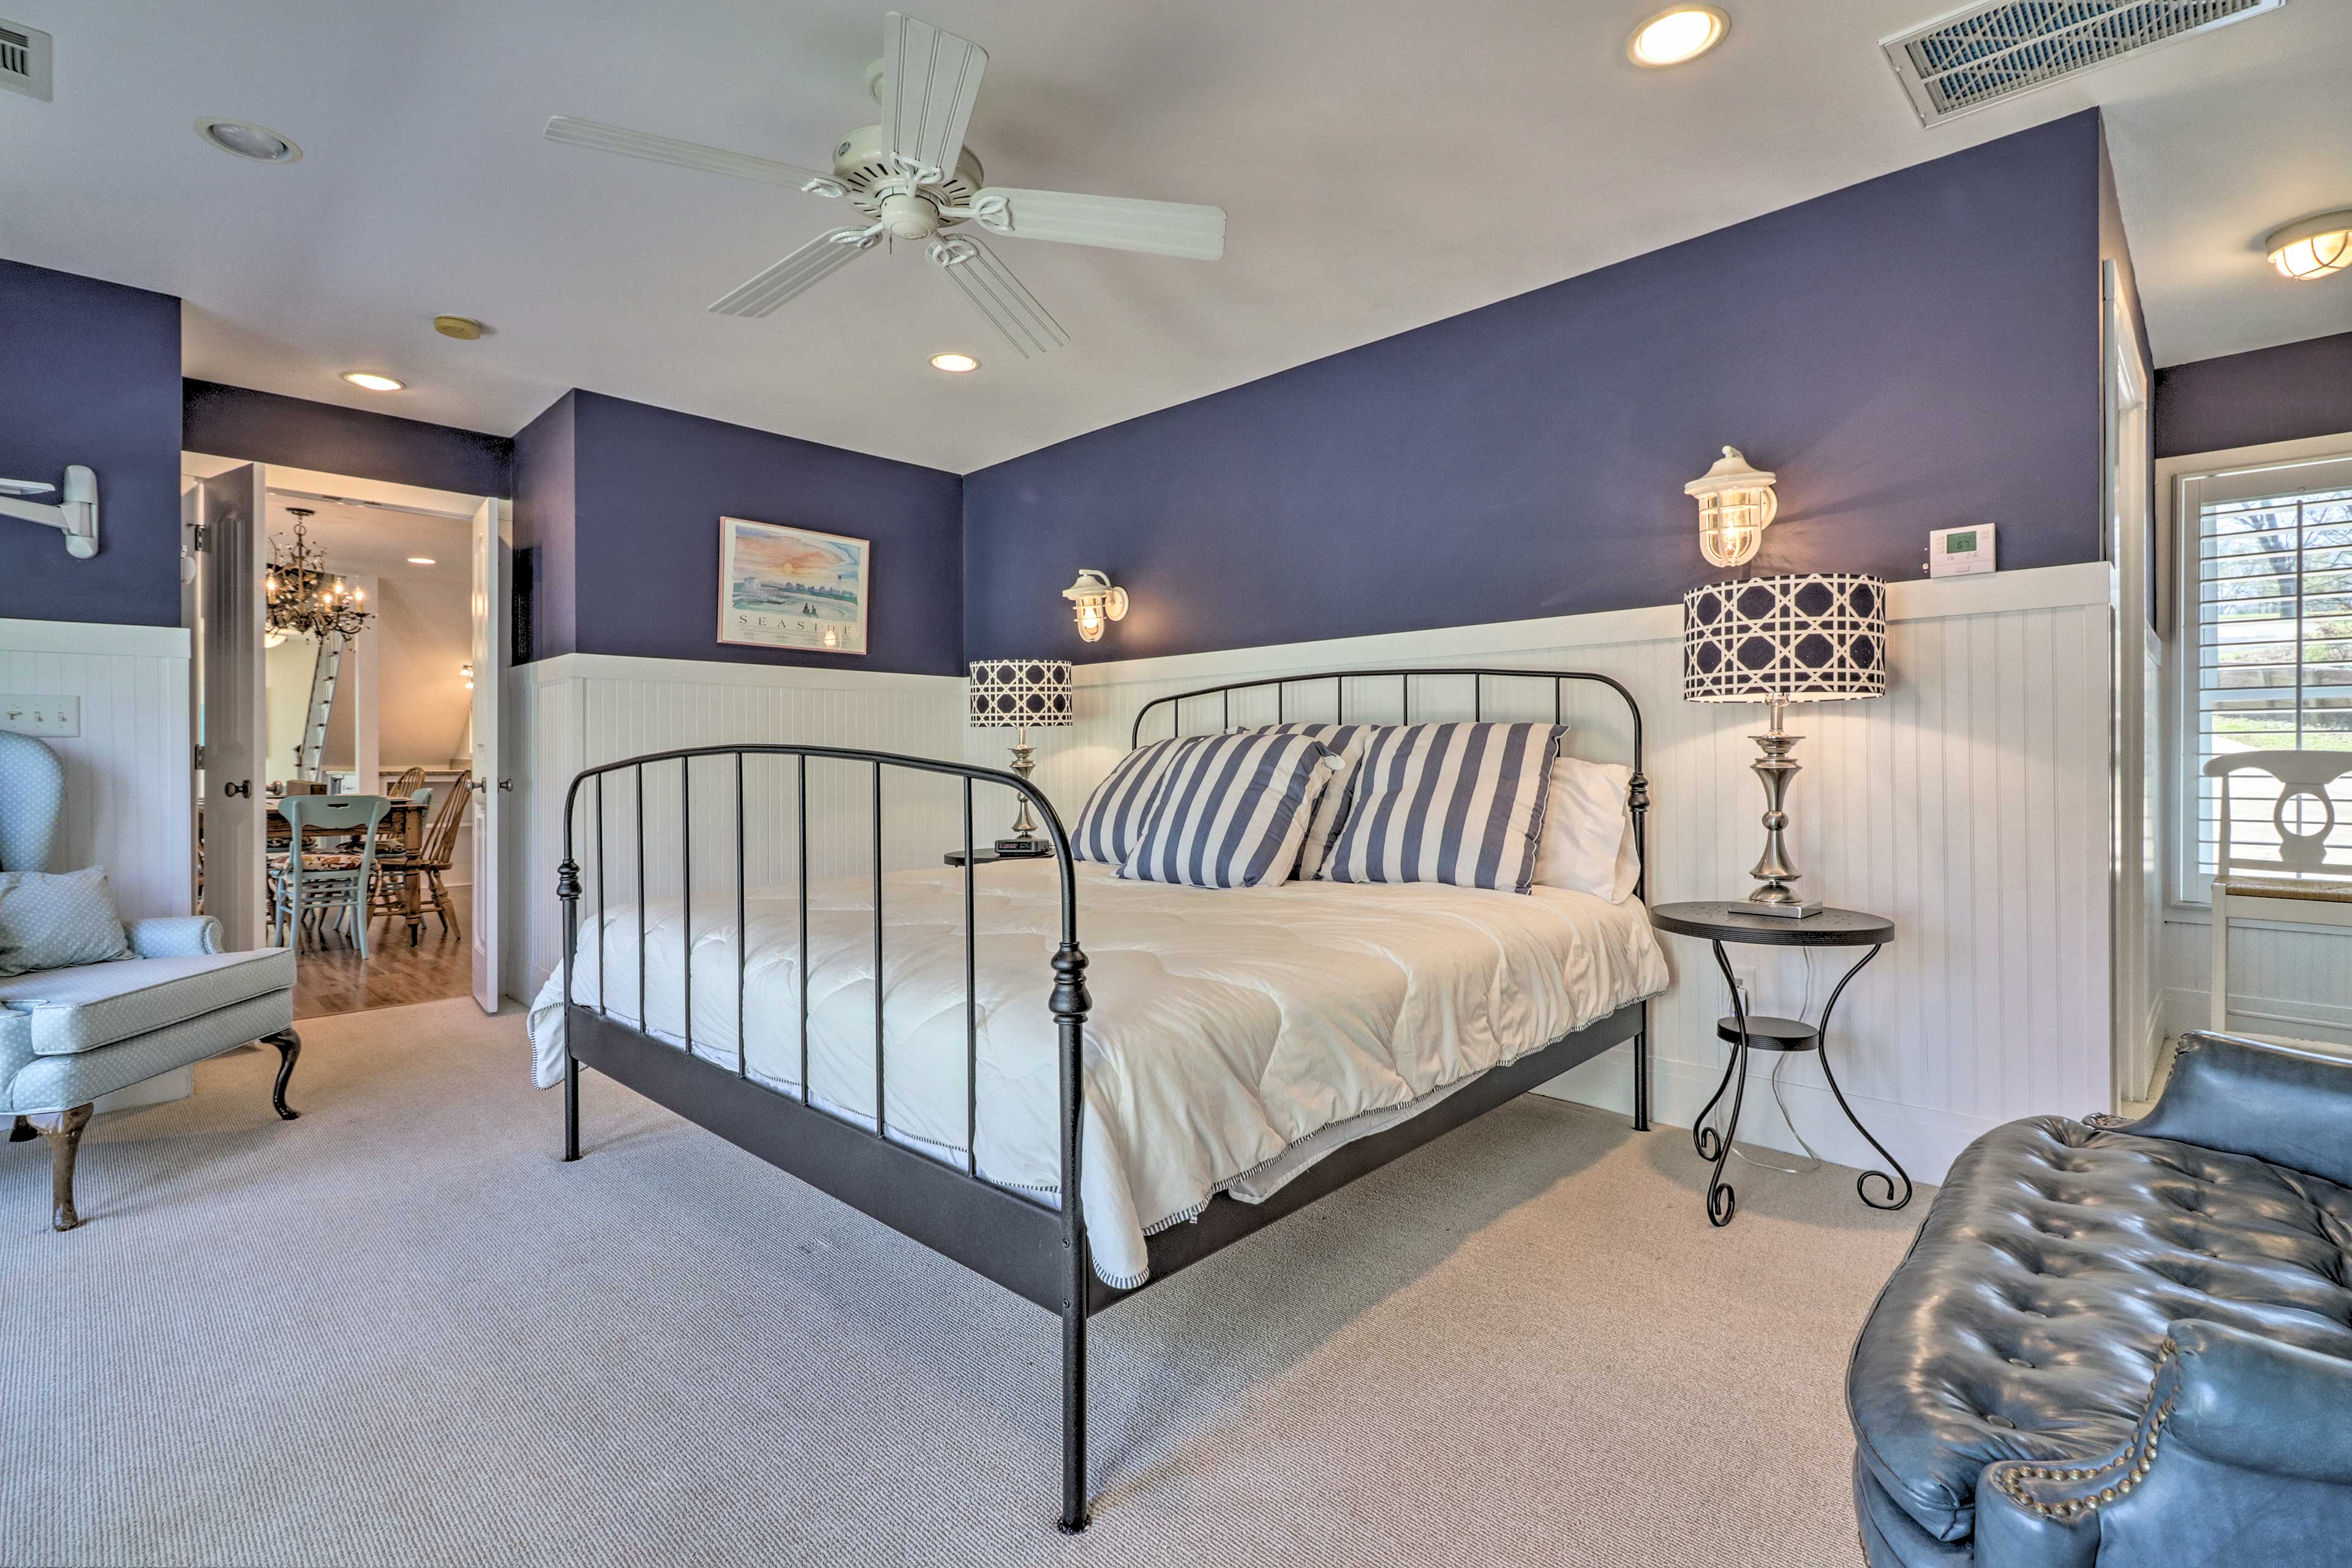 Nautical sconces frame the king-sized bed with warm light.